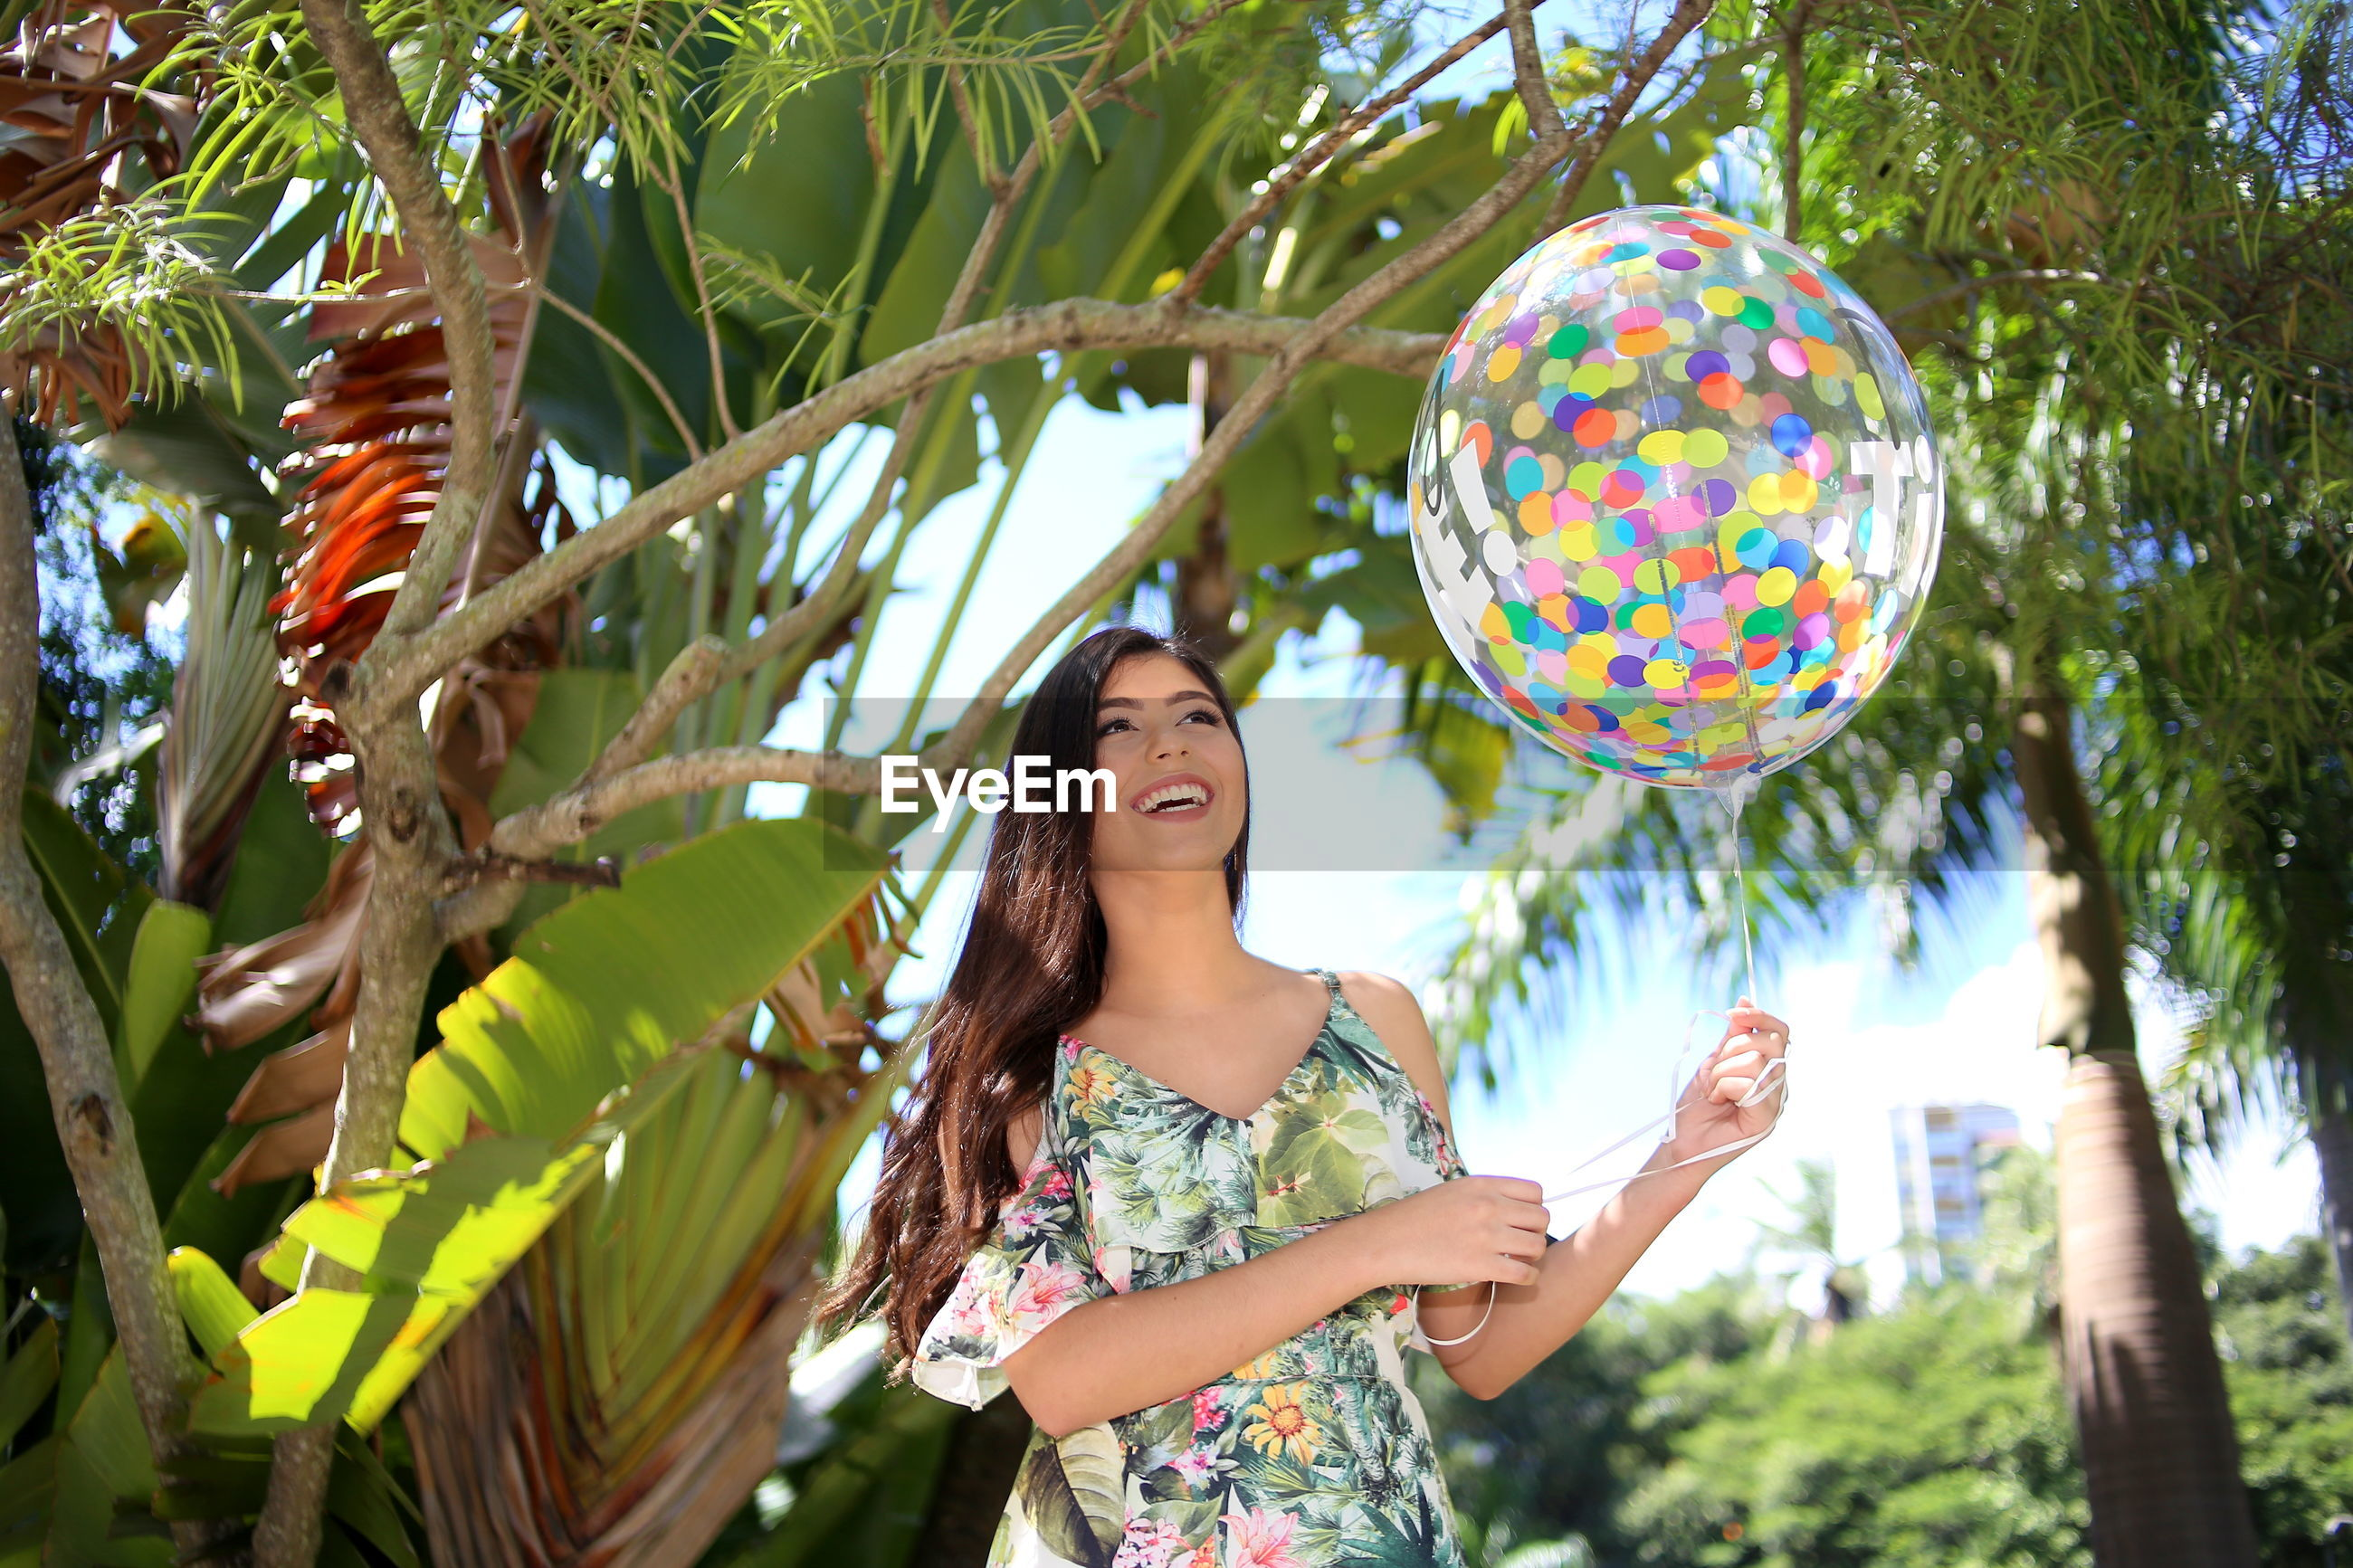 Low angle view of beautiful woman holding colorful balloon while standing against trees in park